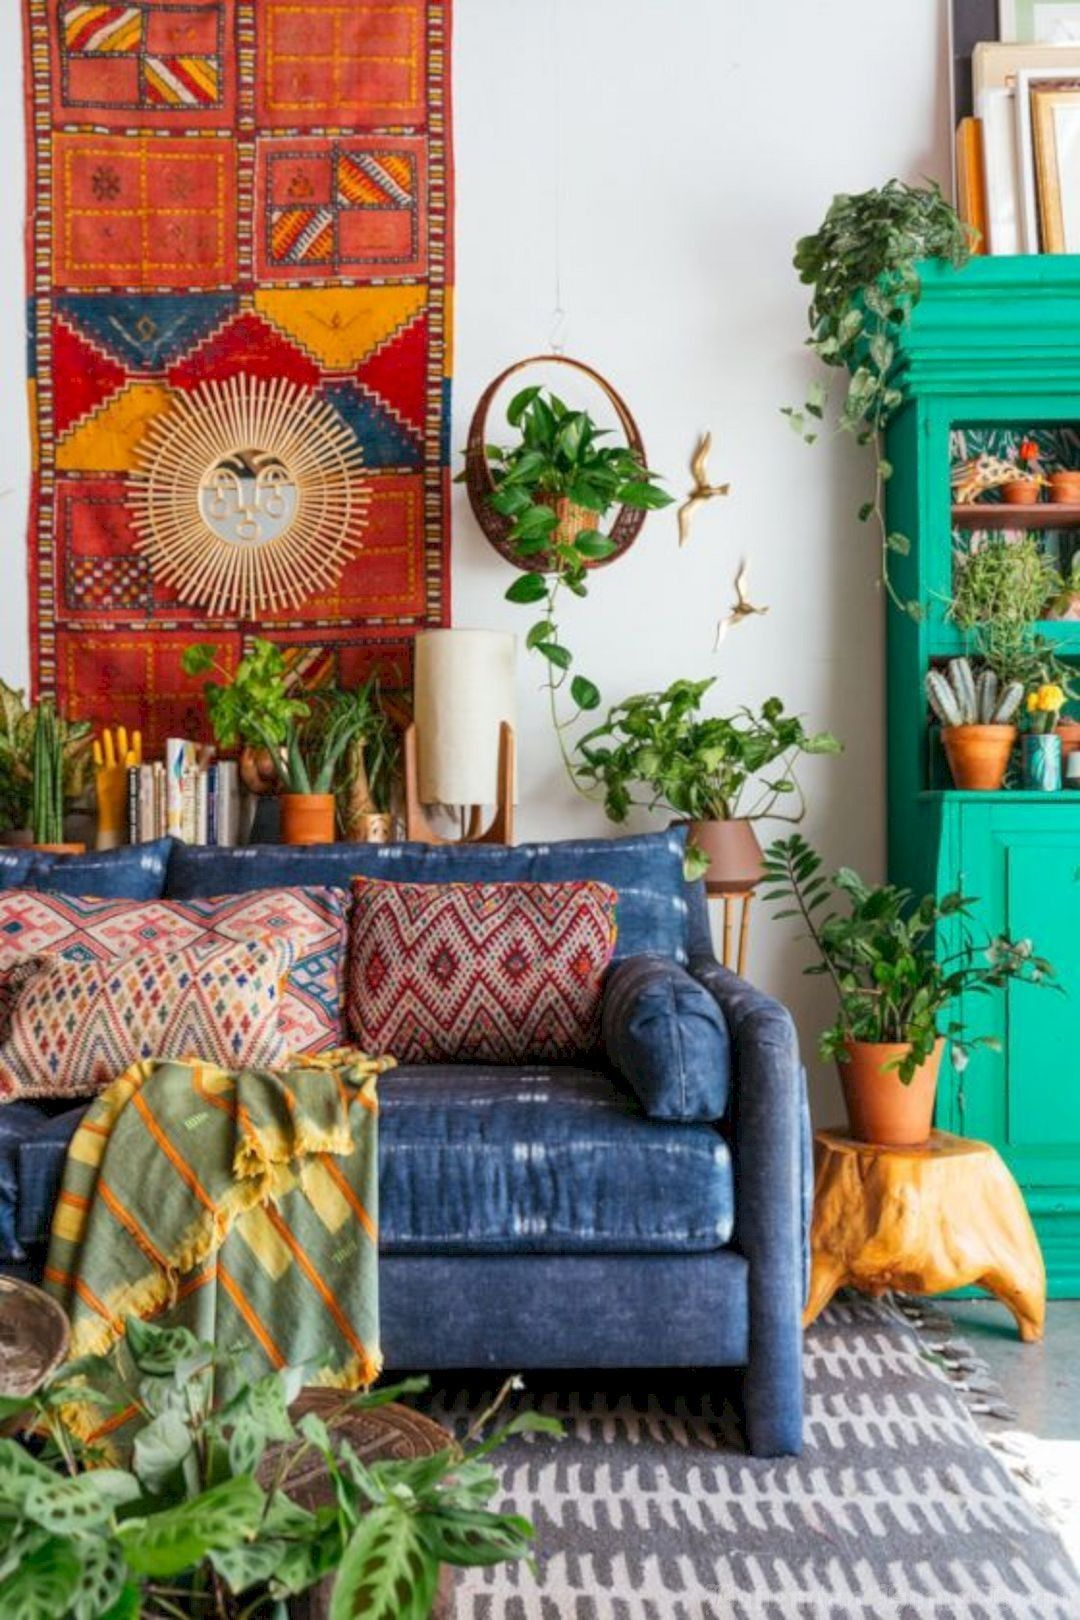 Bohemian Home Decor Tip: Be Consistent